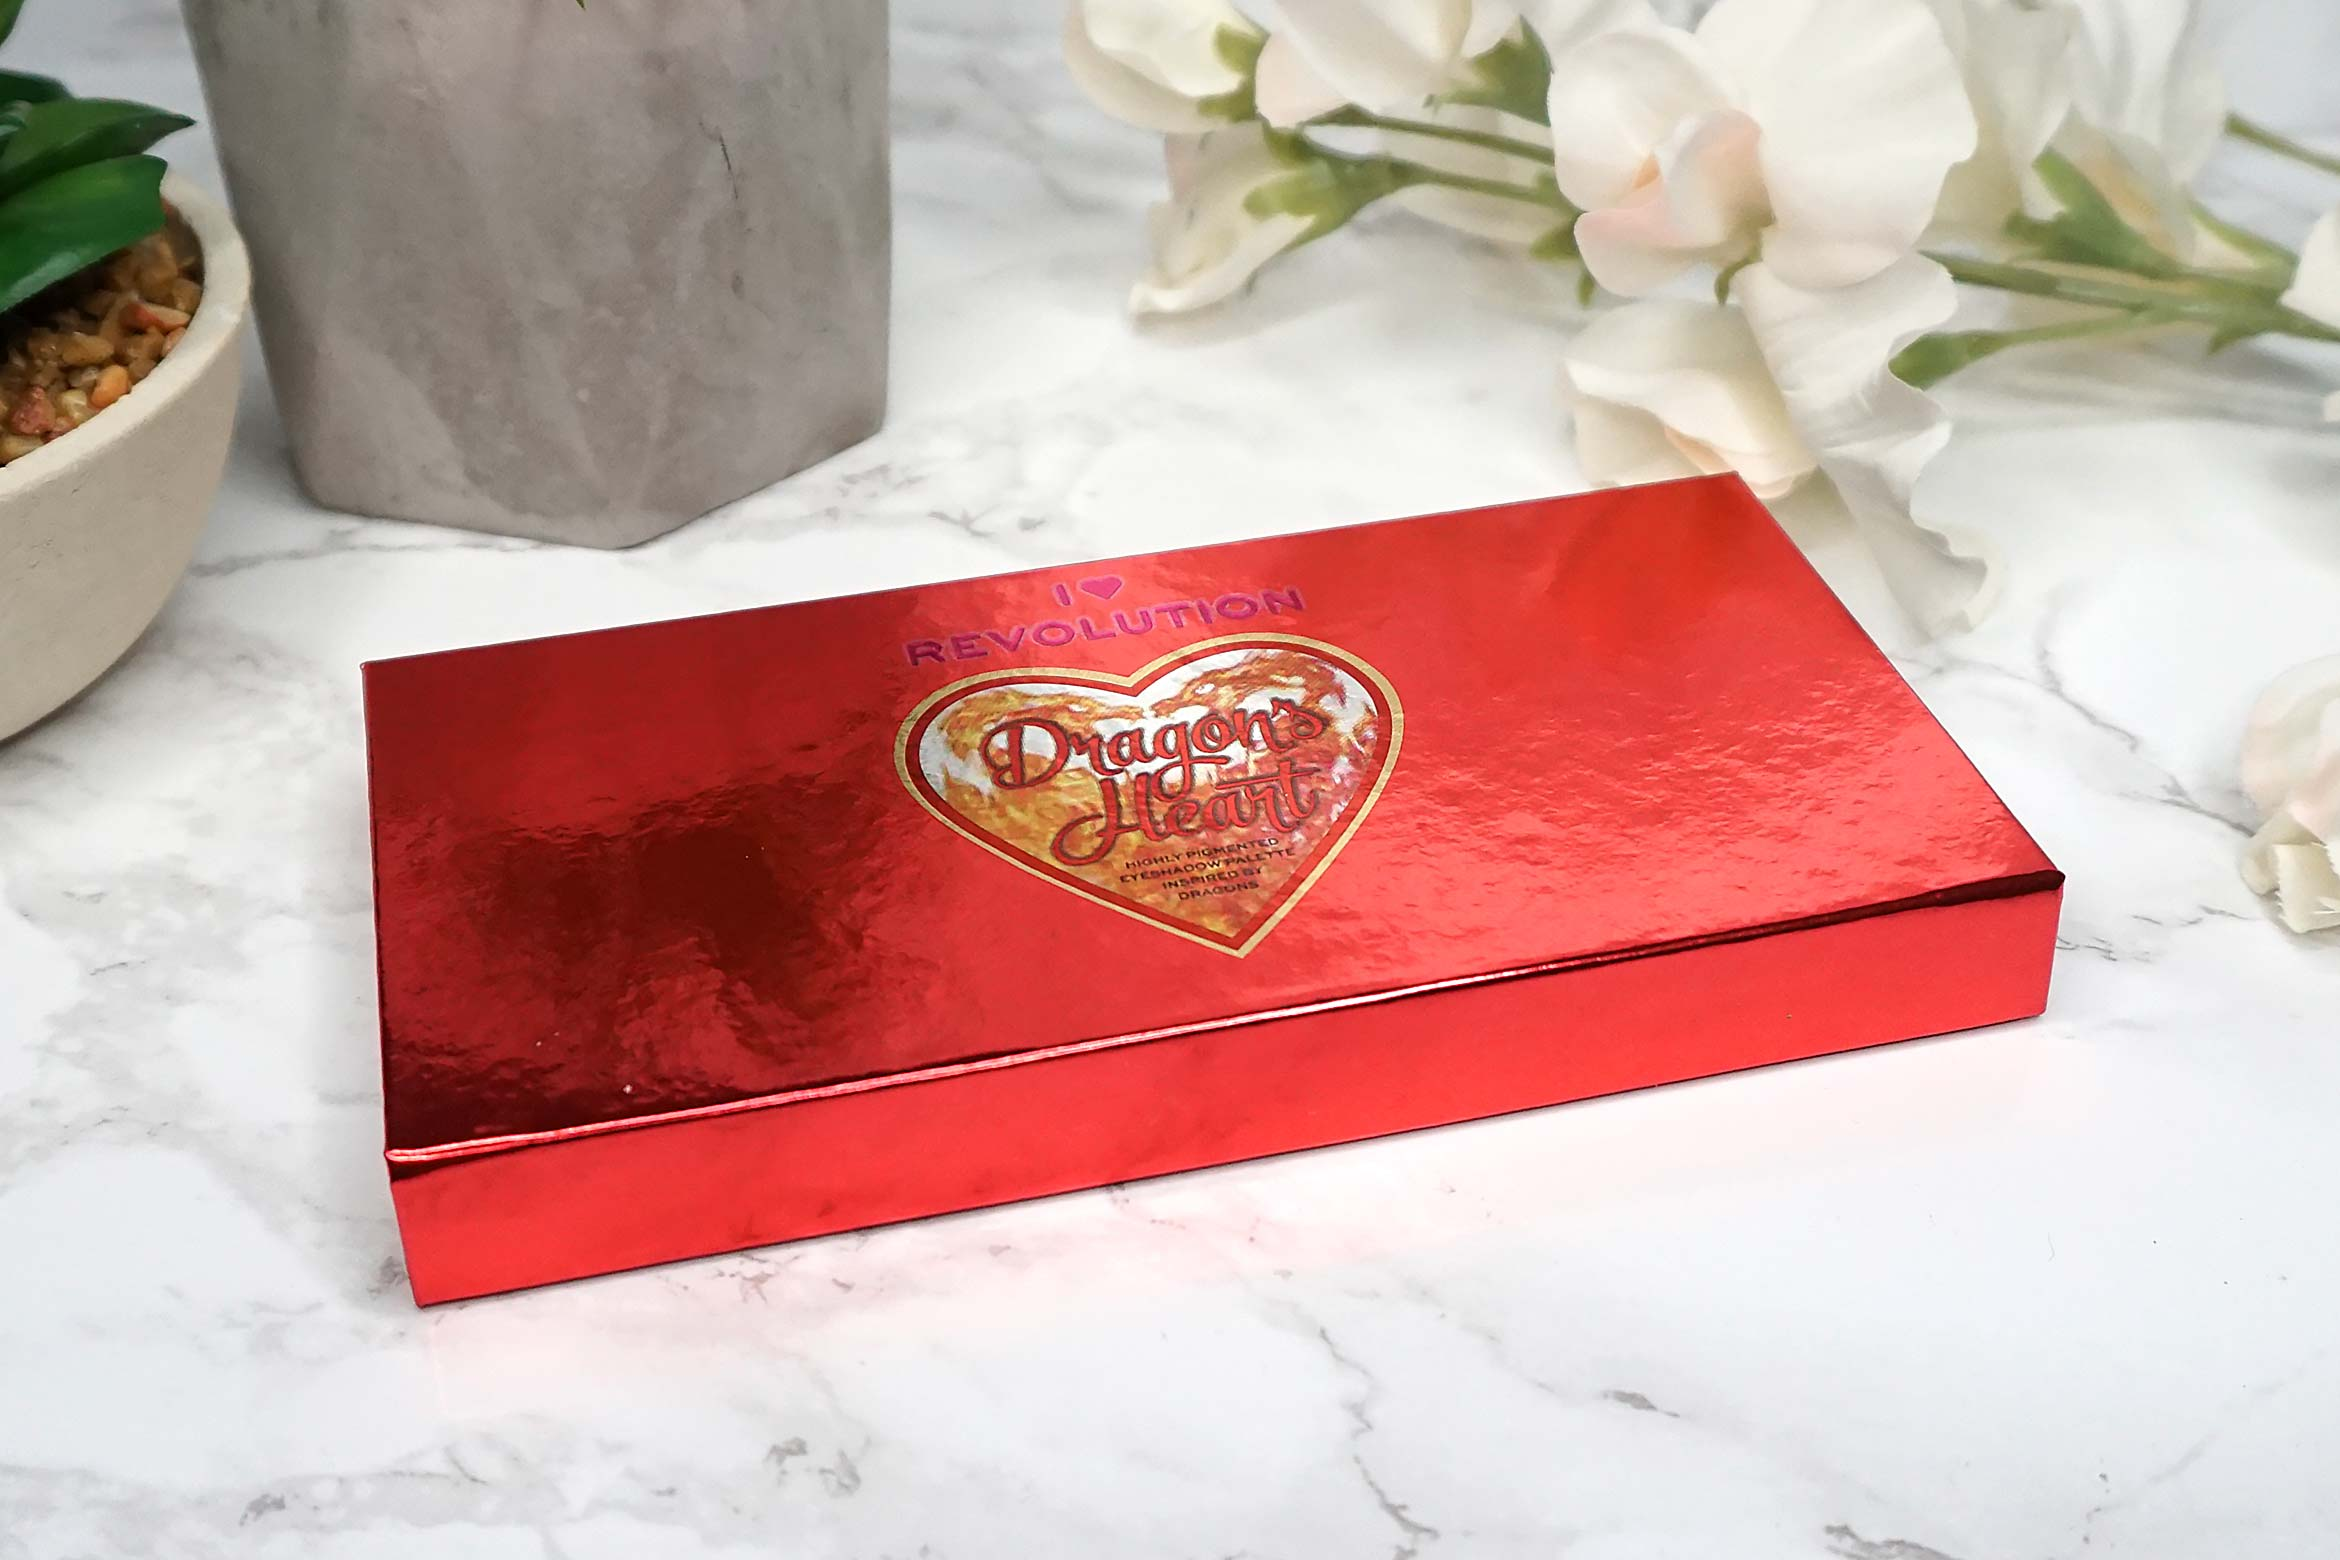 i-heart-revolution-dragon's-heart-eyeshadow-palette-review-3